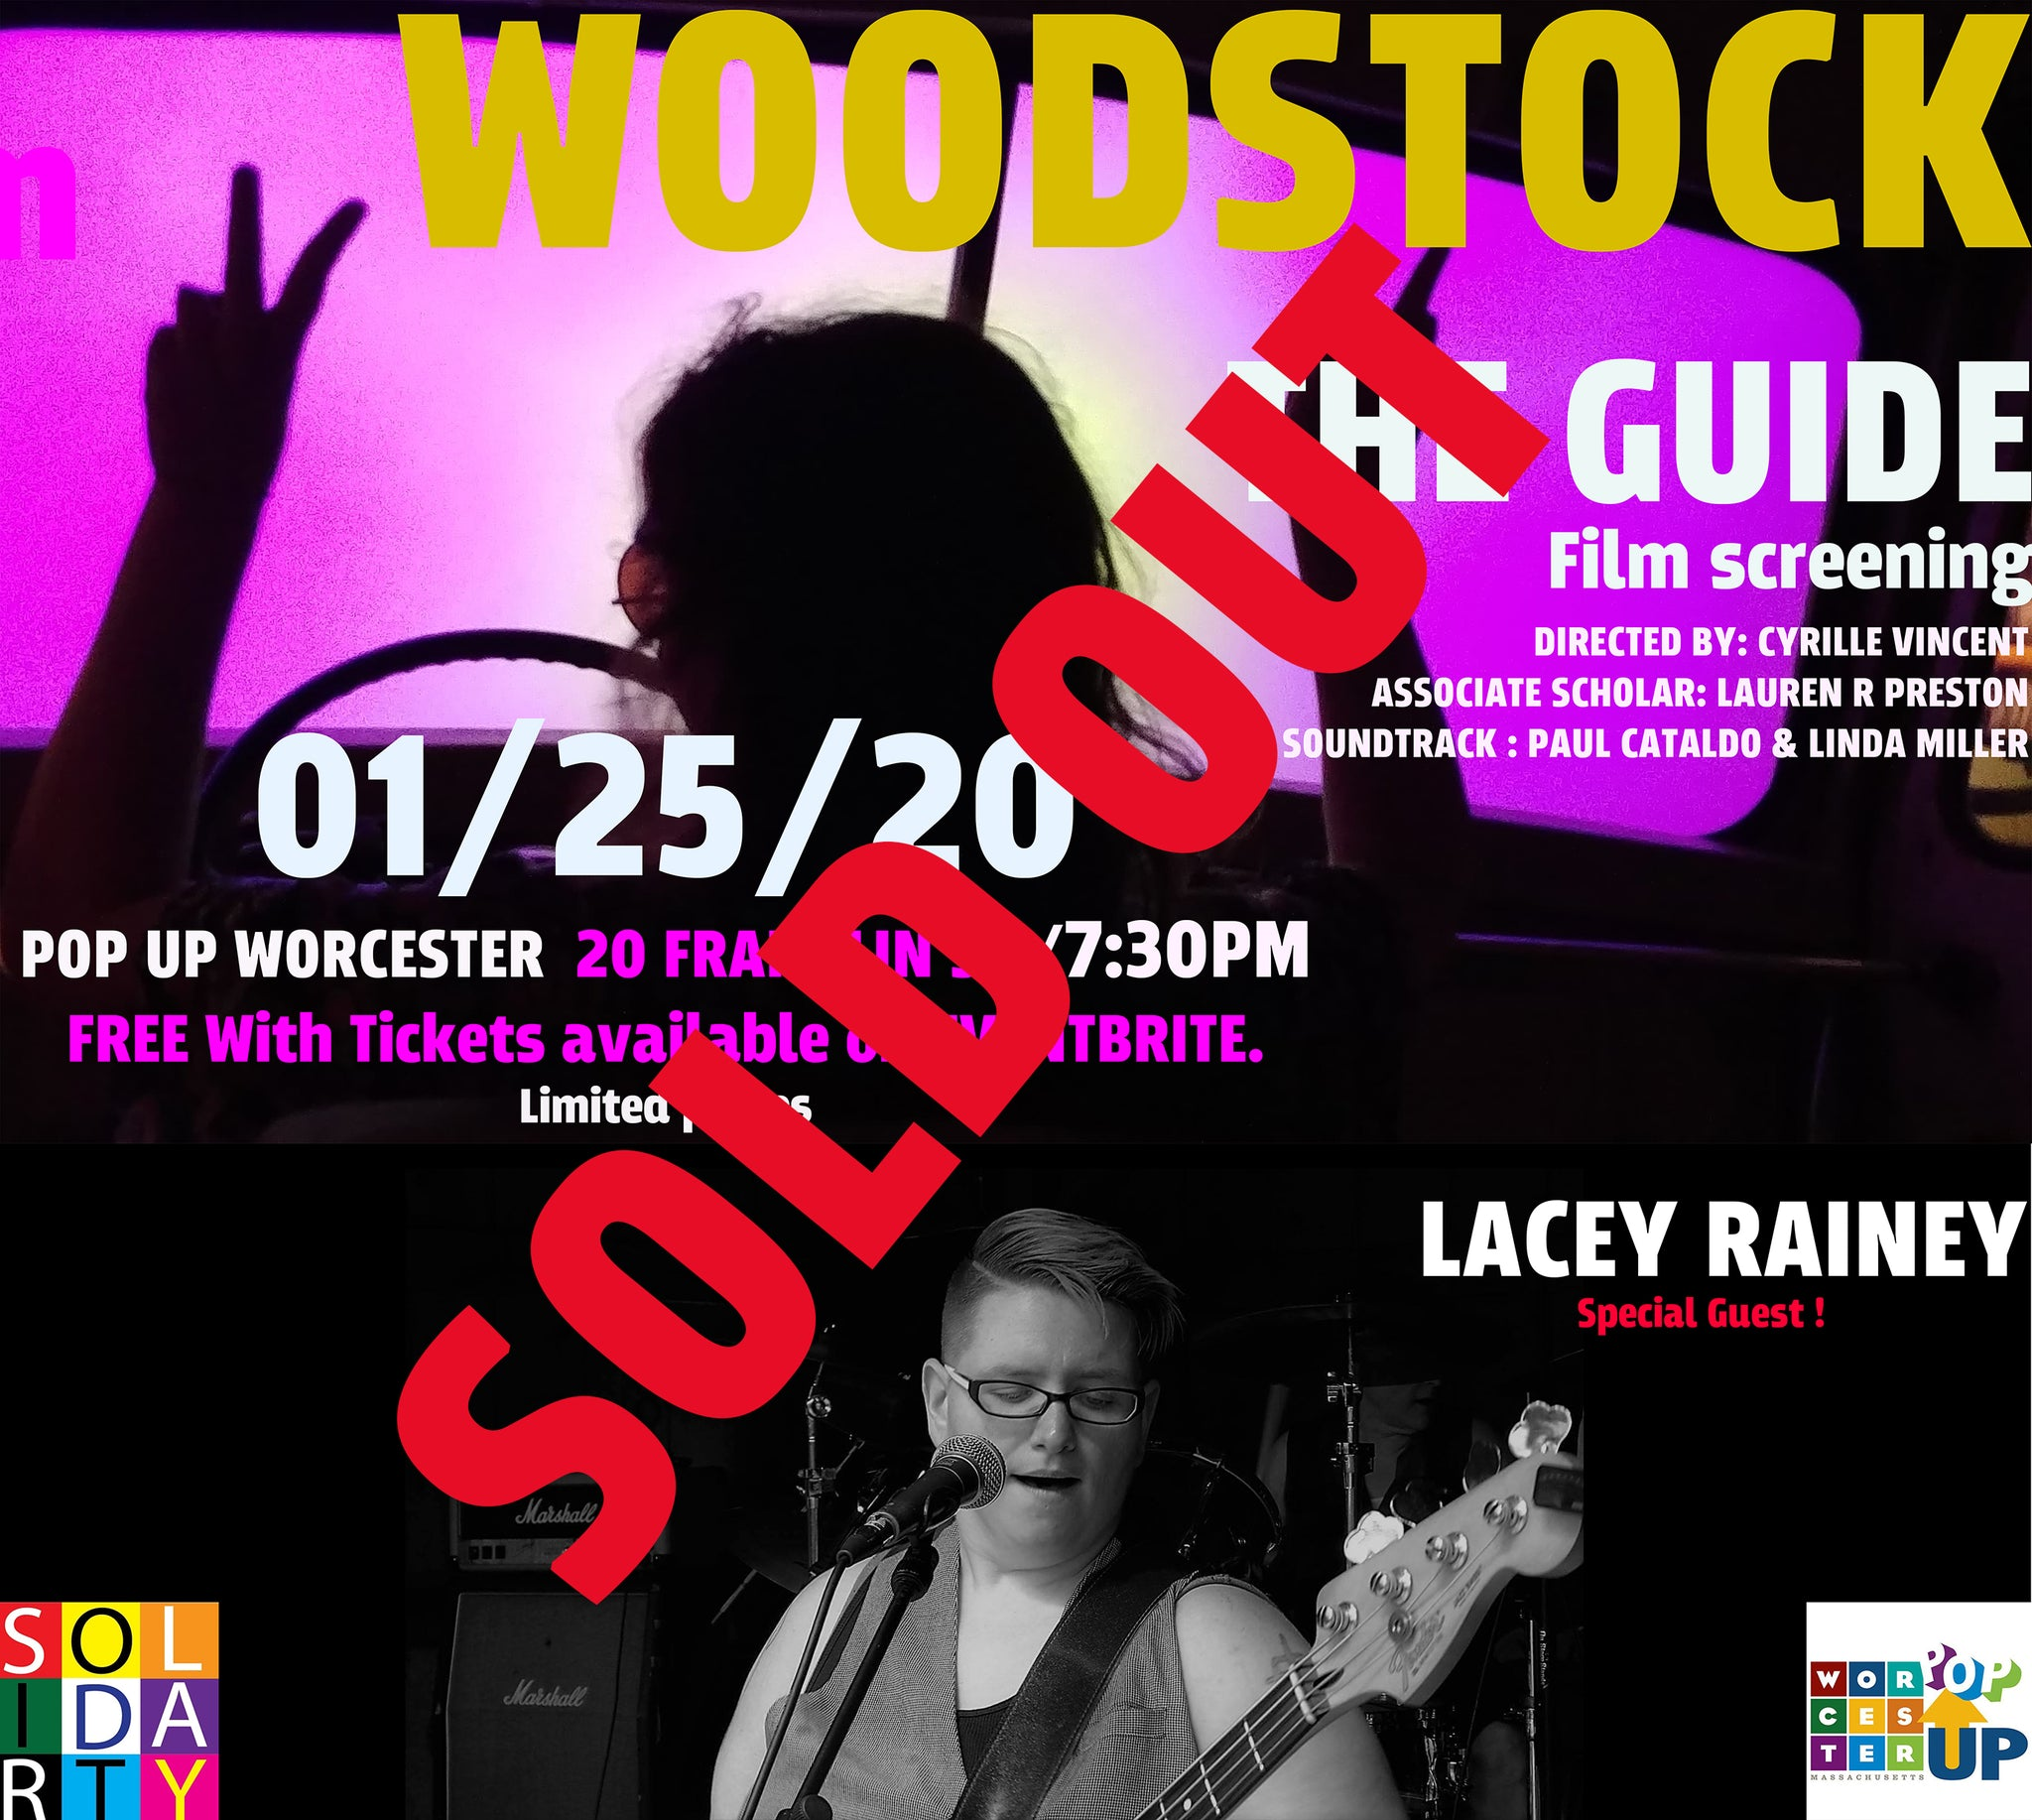 Woodstock : The Guide Film Preview officially Sold Out create Extra  limited number of  tickets for Peace and Love !